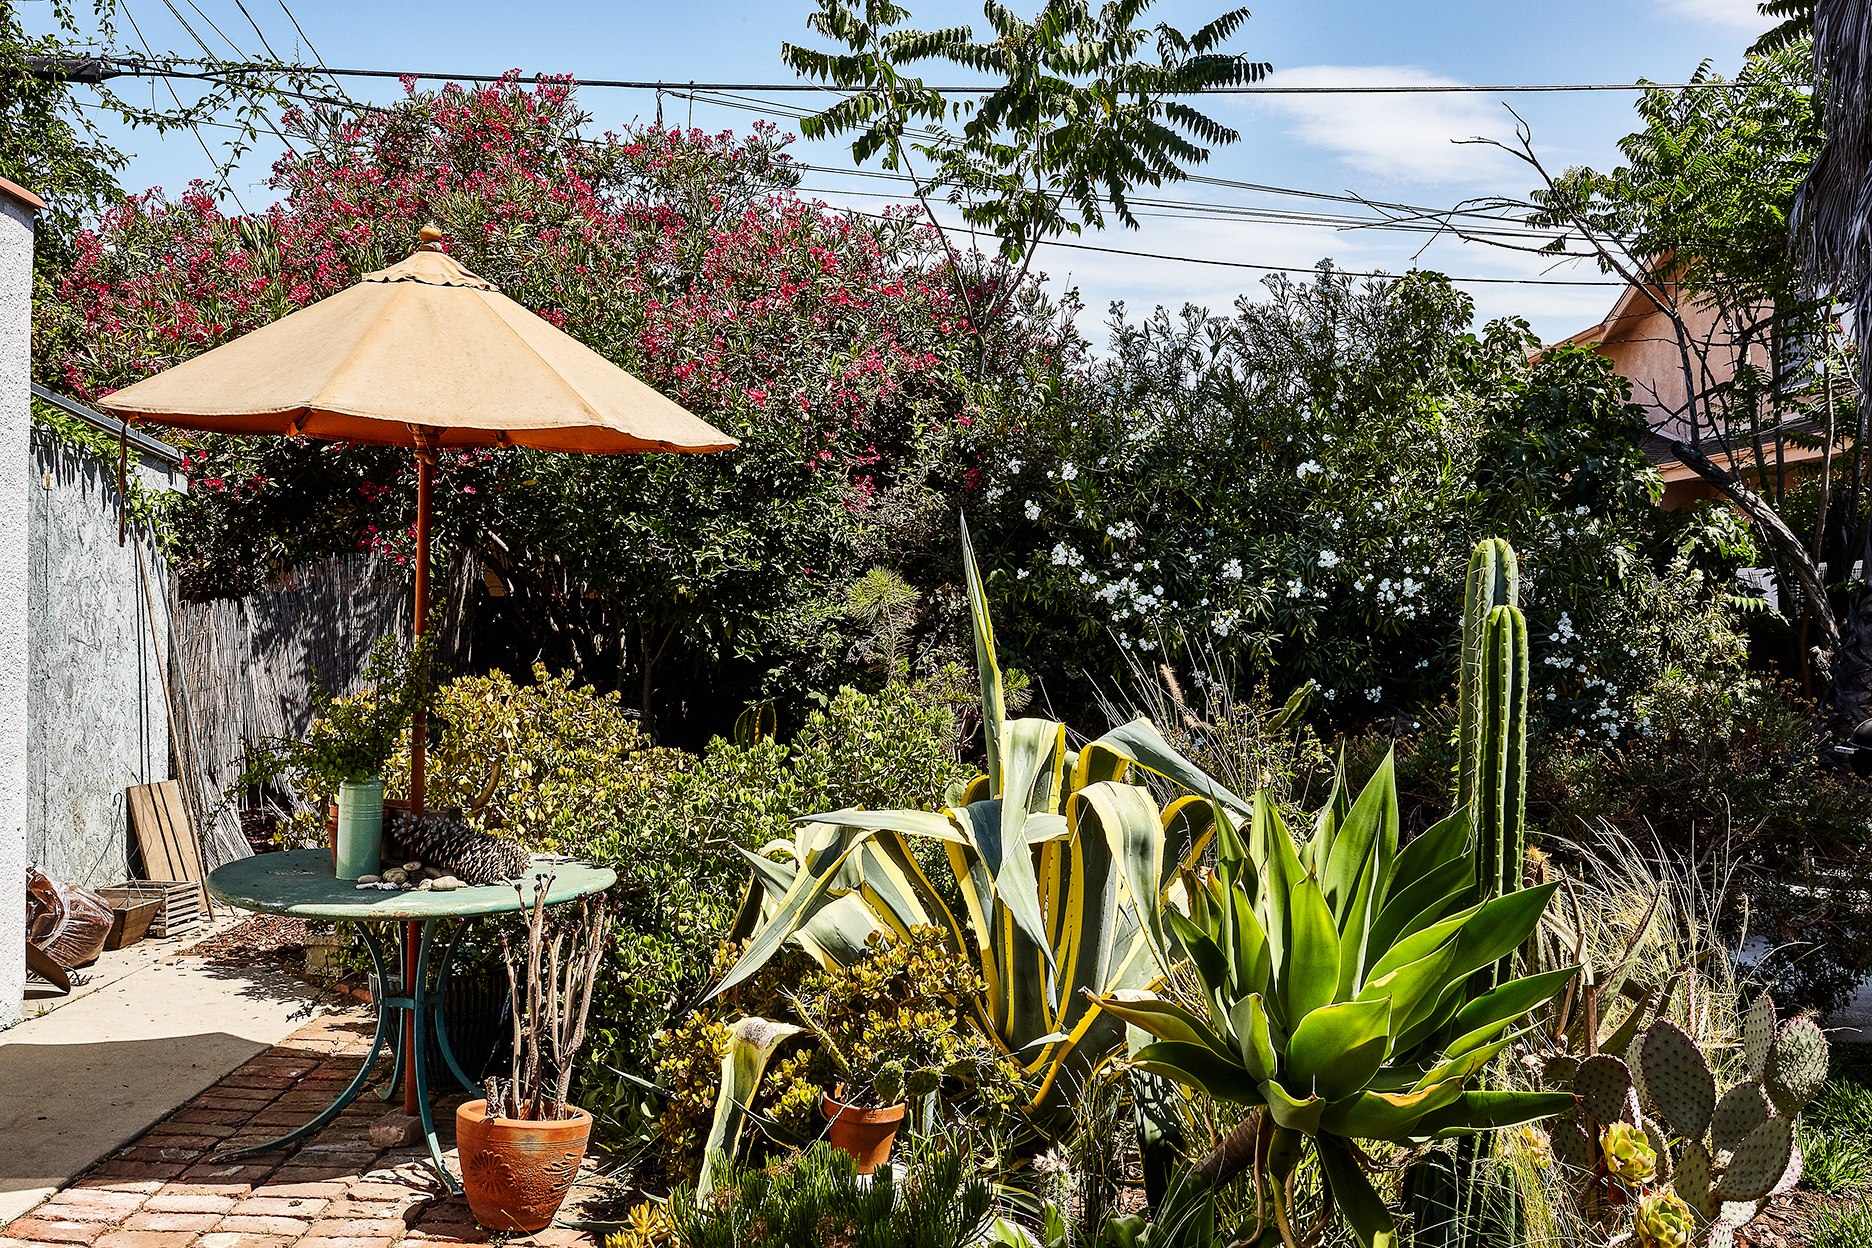 An outdoor seating area with a table that has a peach colored umbrella. There are various plants and cacti in the yard.